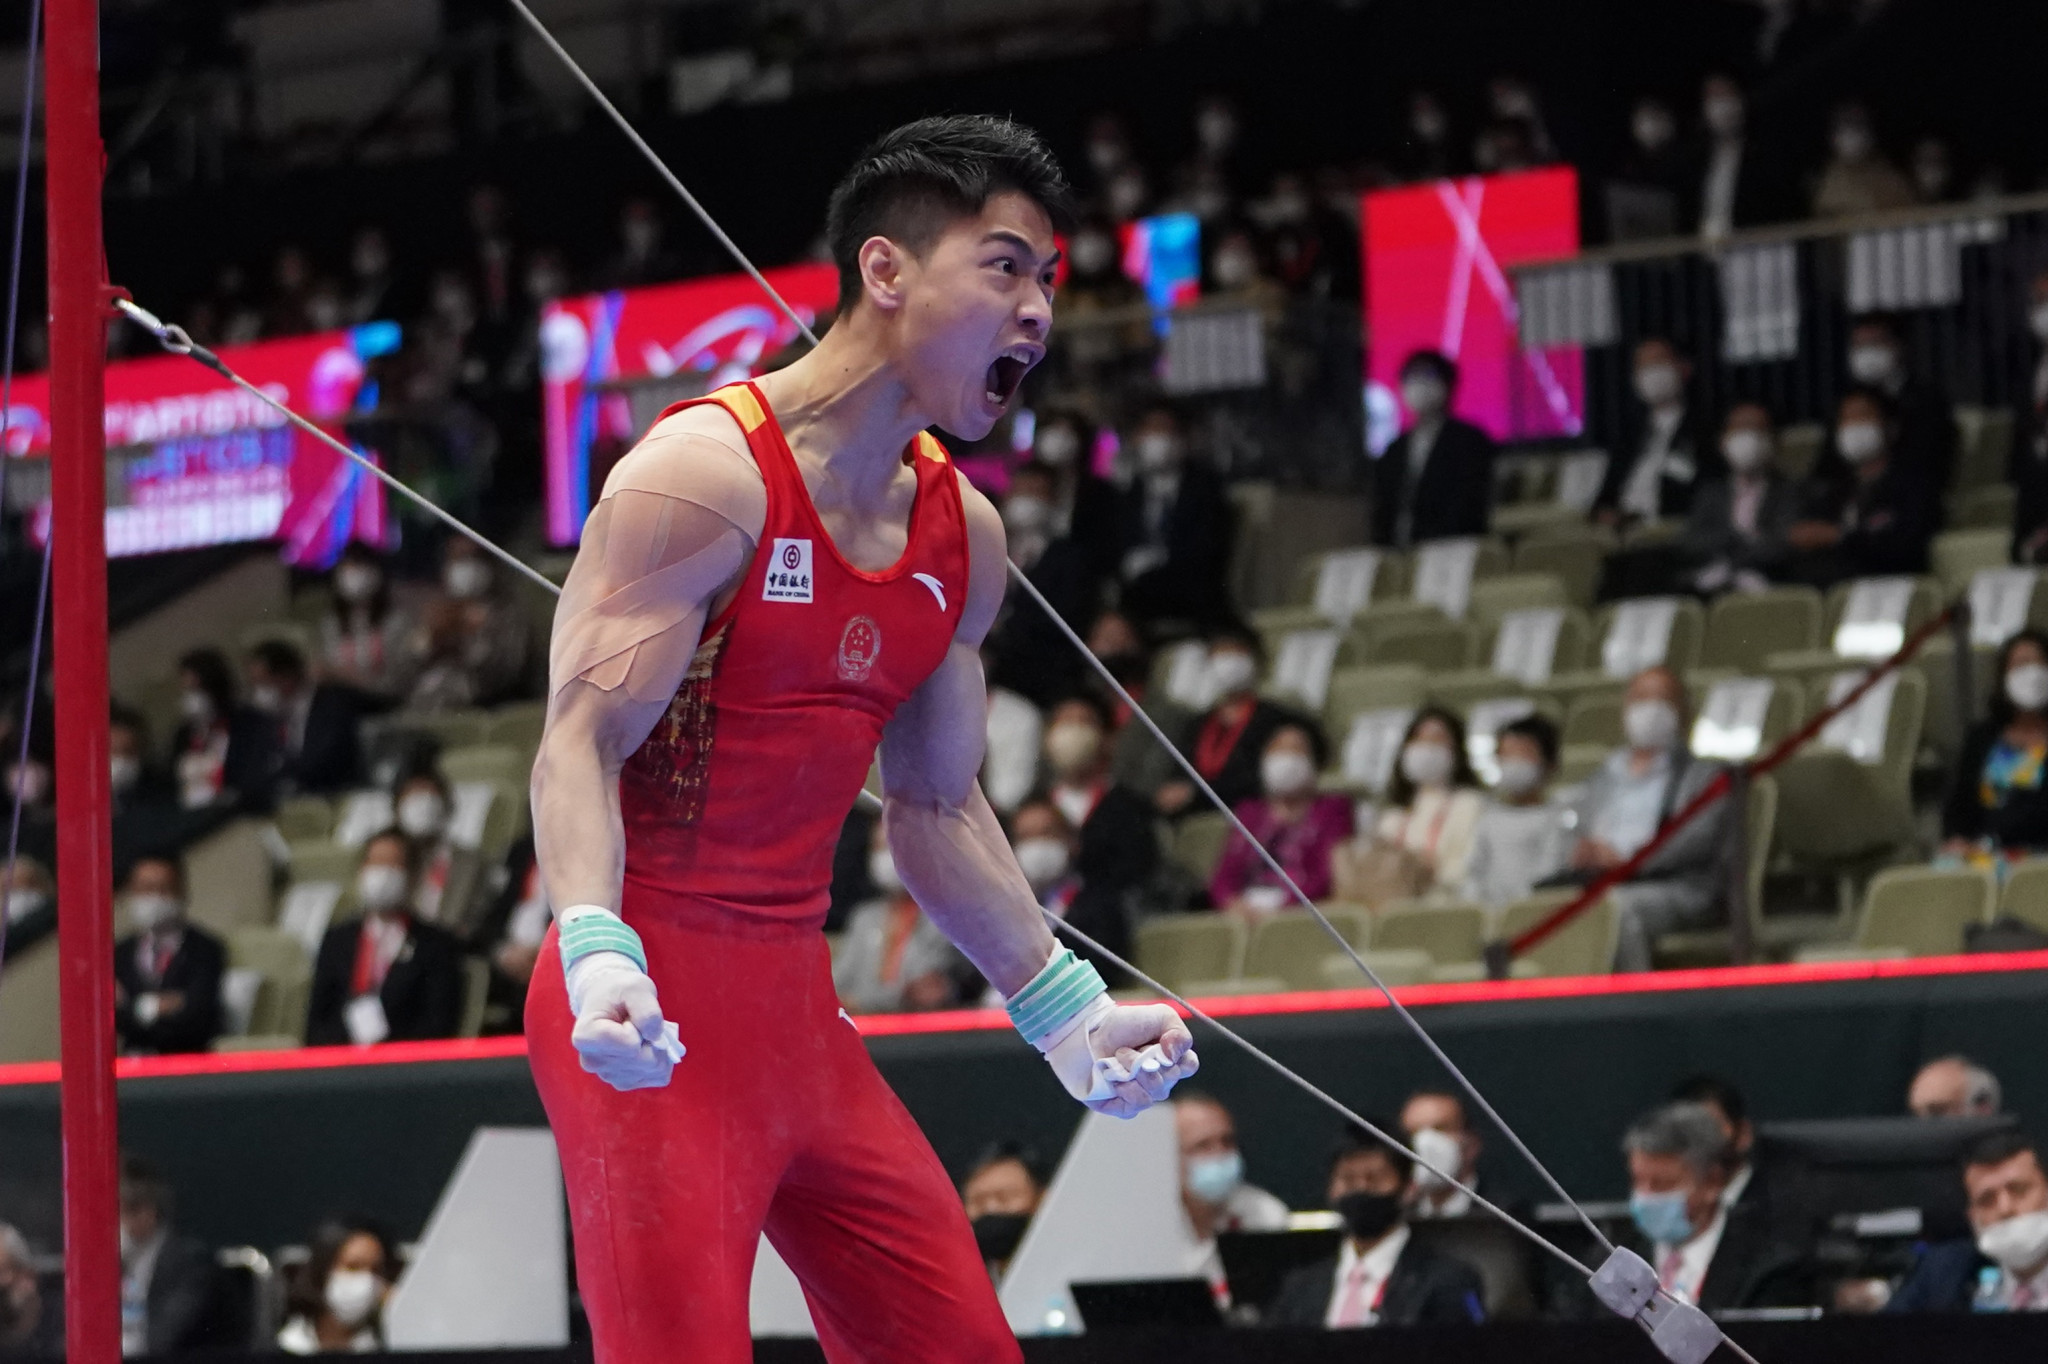 Hu wins two golds on final day of Artistic Gymnastics World Championships